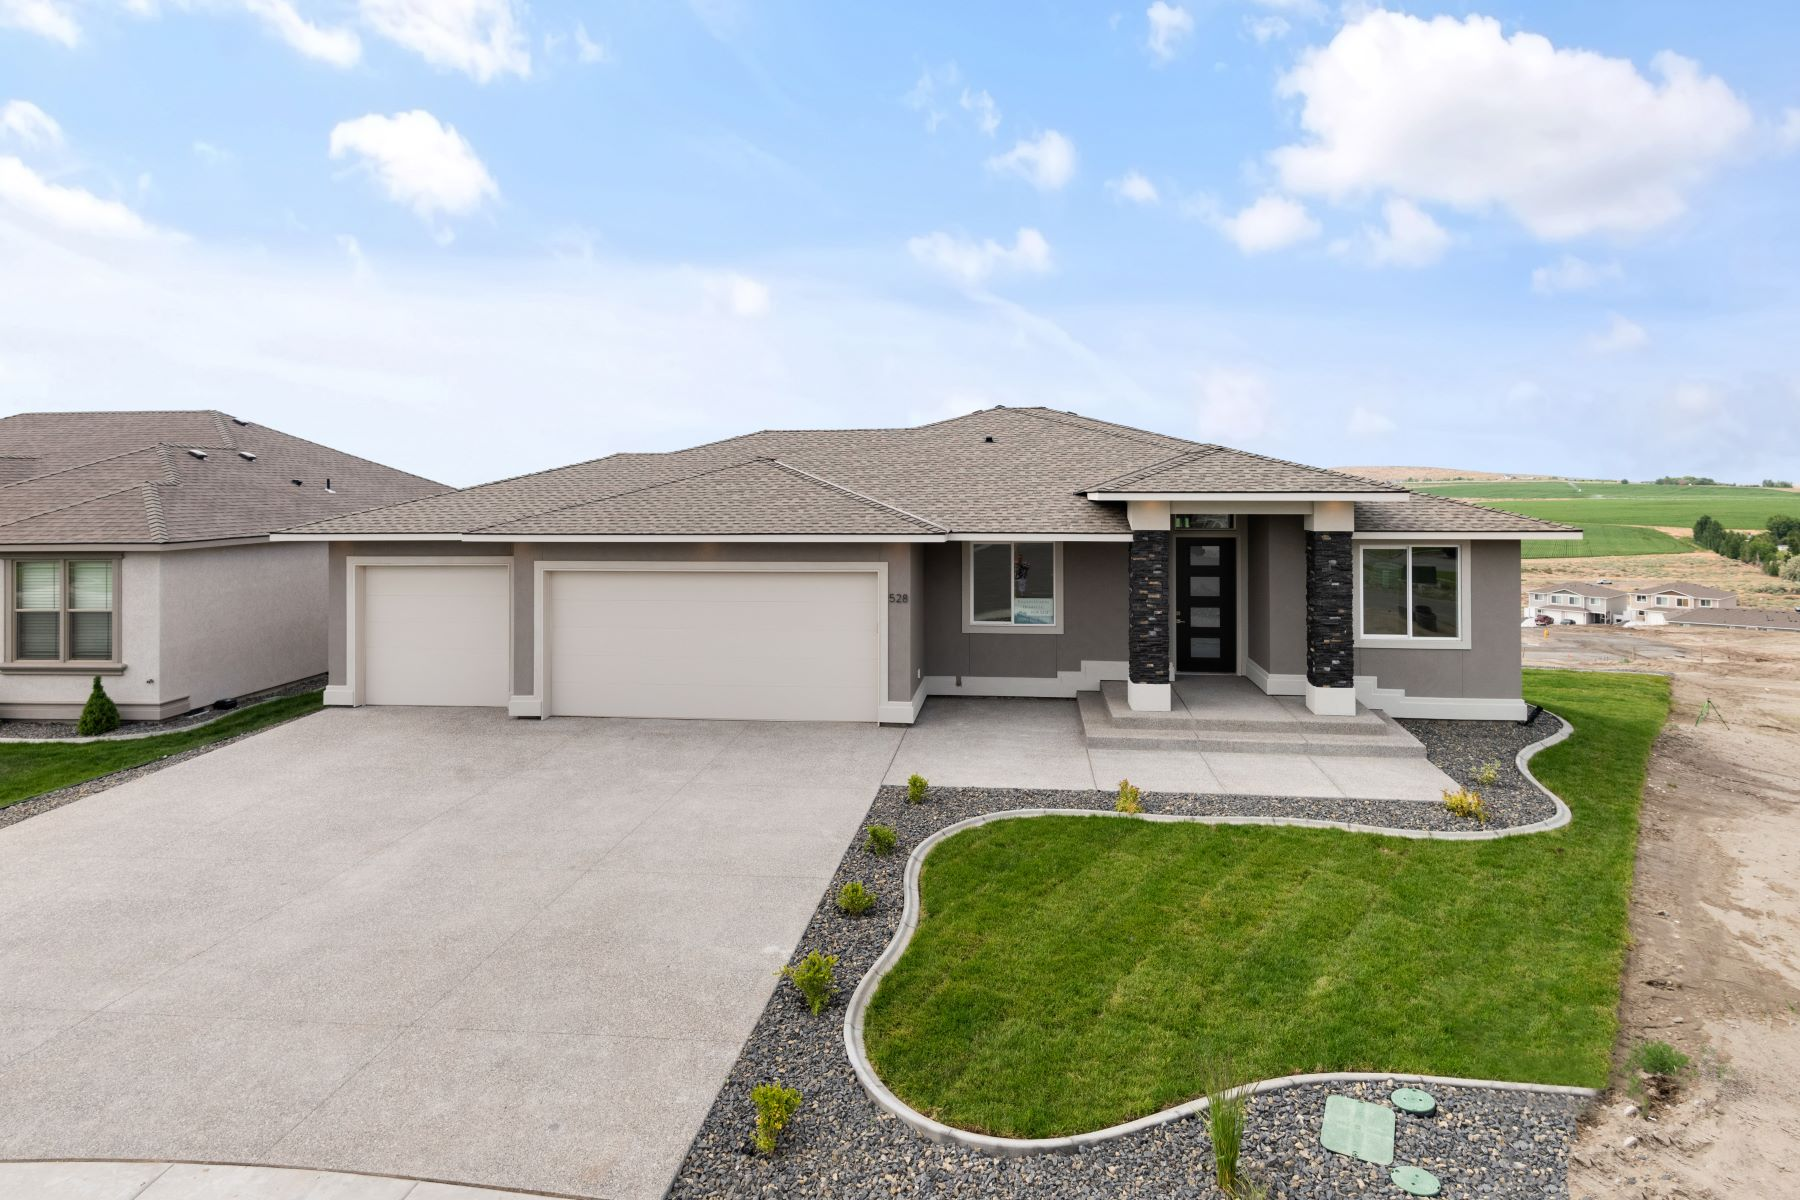 Single Family Homes for Sale at Valsan Custom Homes 528 Athens Drive West Richland, Washington 99353 United States